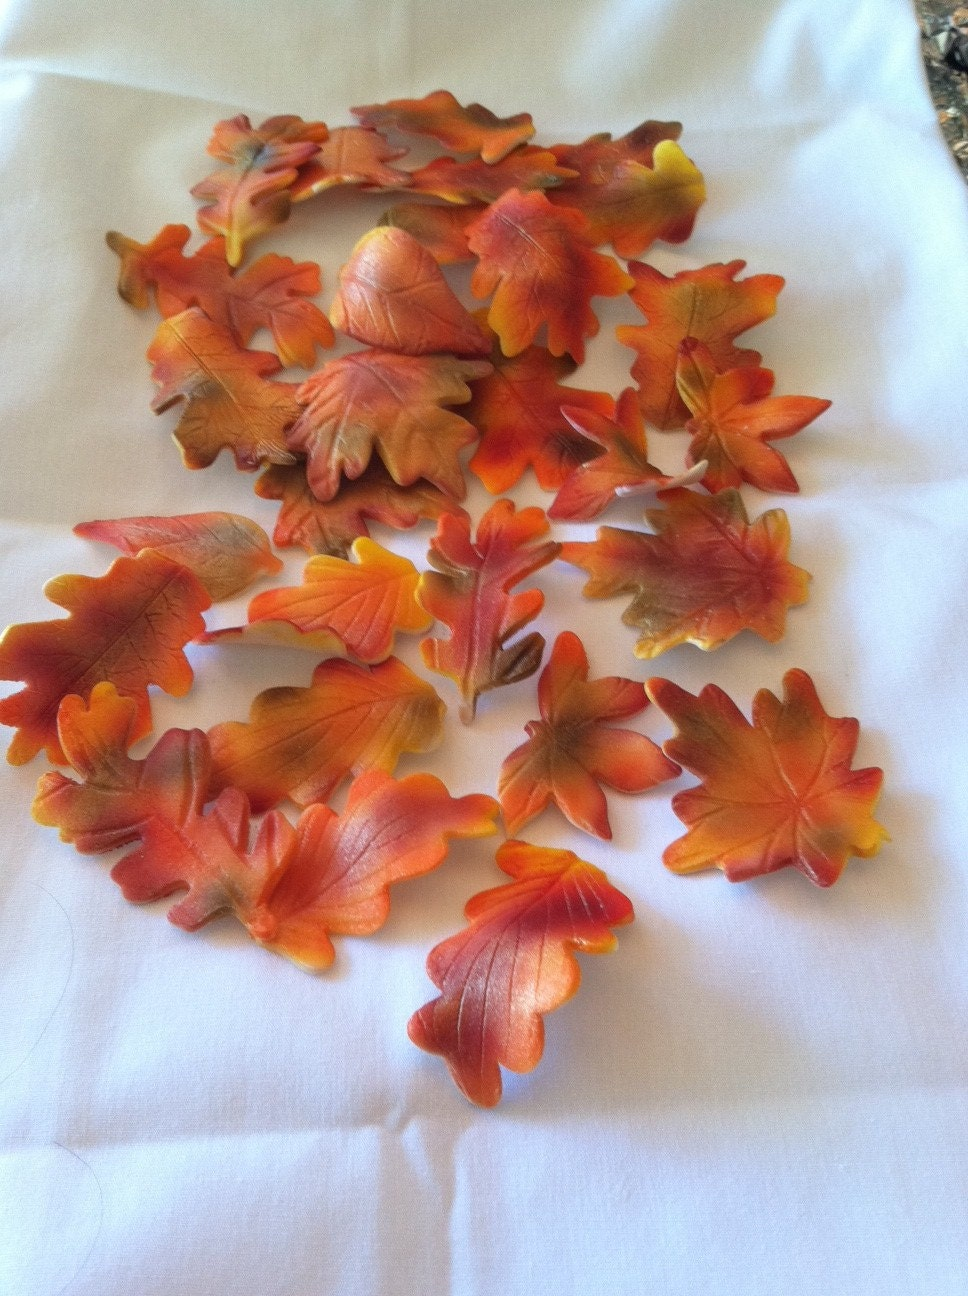 Cake Decorating Fall Leaves : Cake Decorations Autumn Gum Paste Edible Leaves by ...